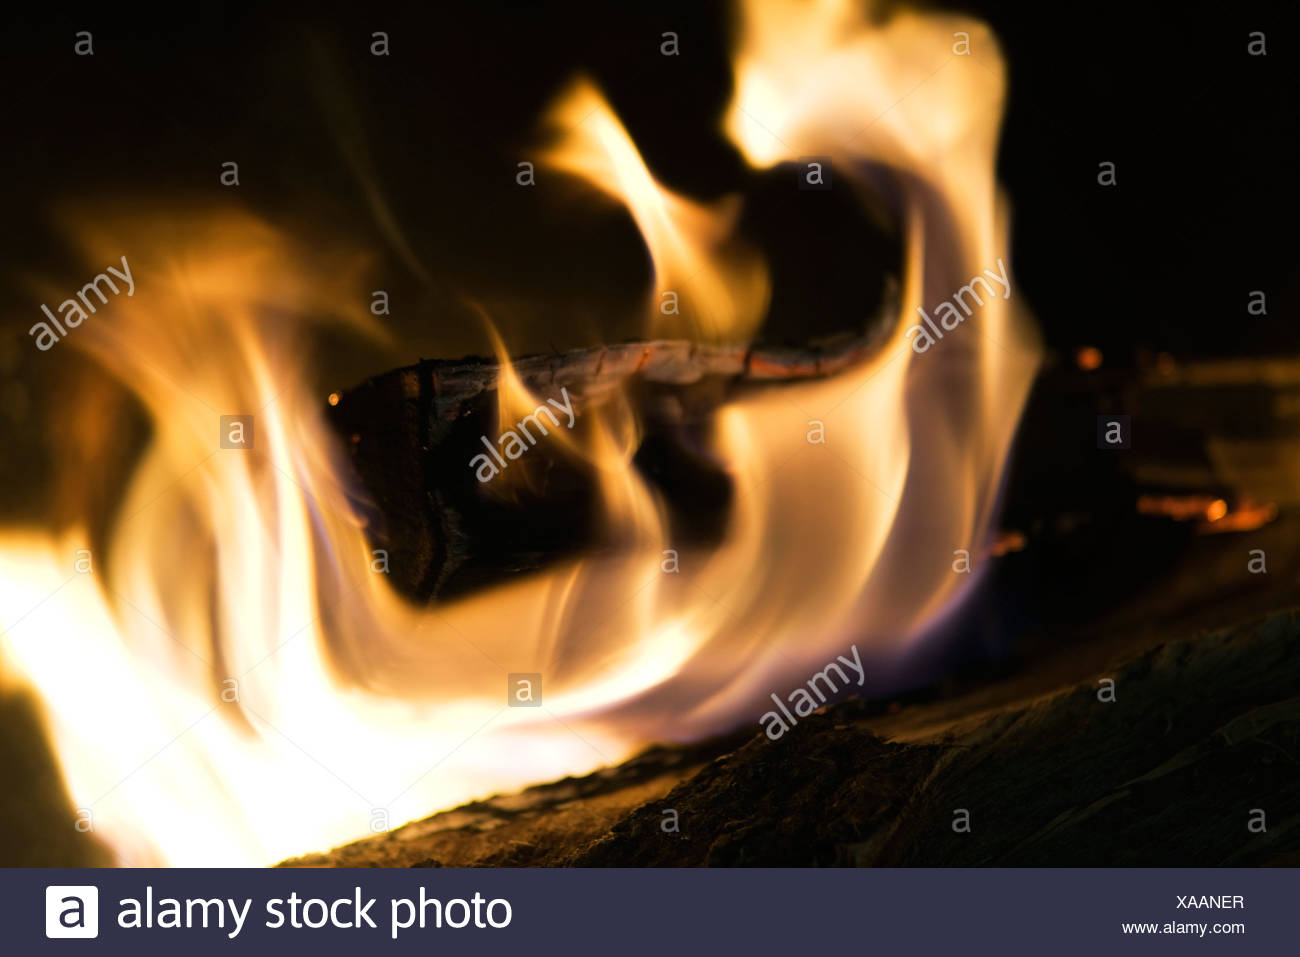 Fire, close-up - Stock Image